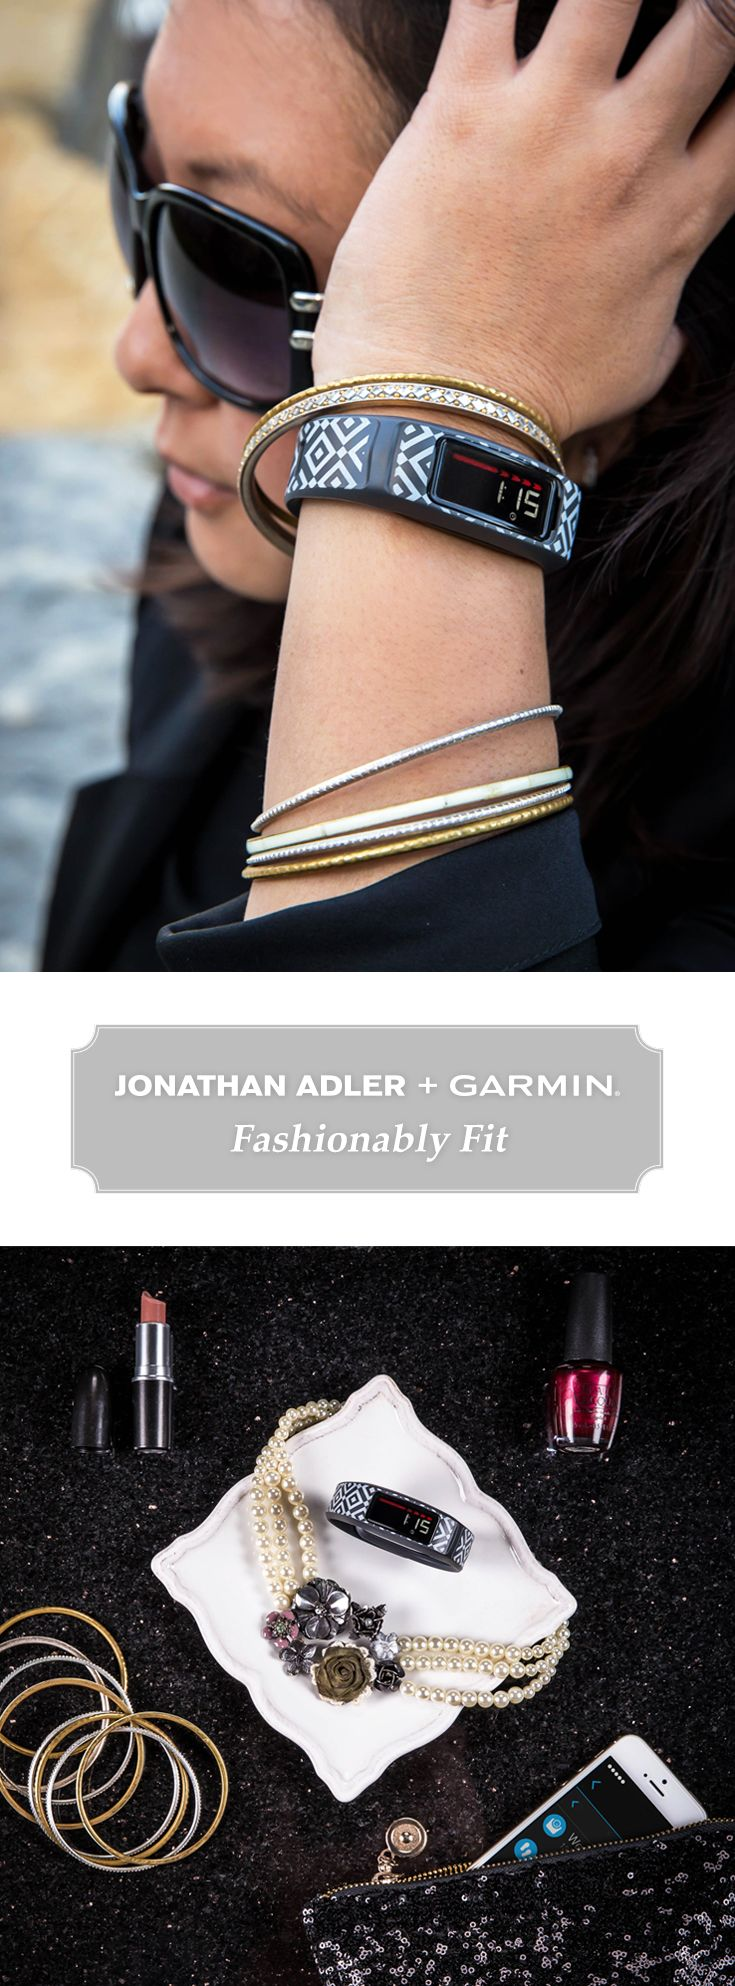 Pretty never goes out of style. With the patterned vivofit 2 fitness bands from @jonathanadler, you can upgrade your wardrobe easily. Track your steps from the gym to the office to a night on the town all with one stylish band. #JAxGarmin